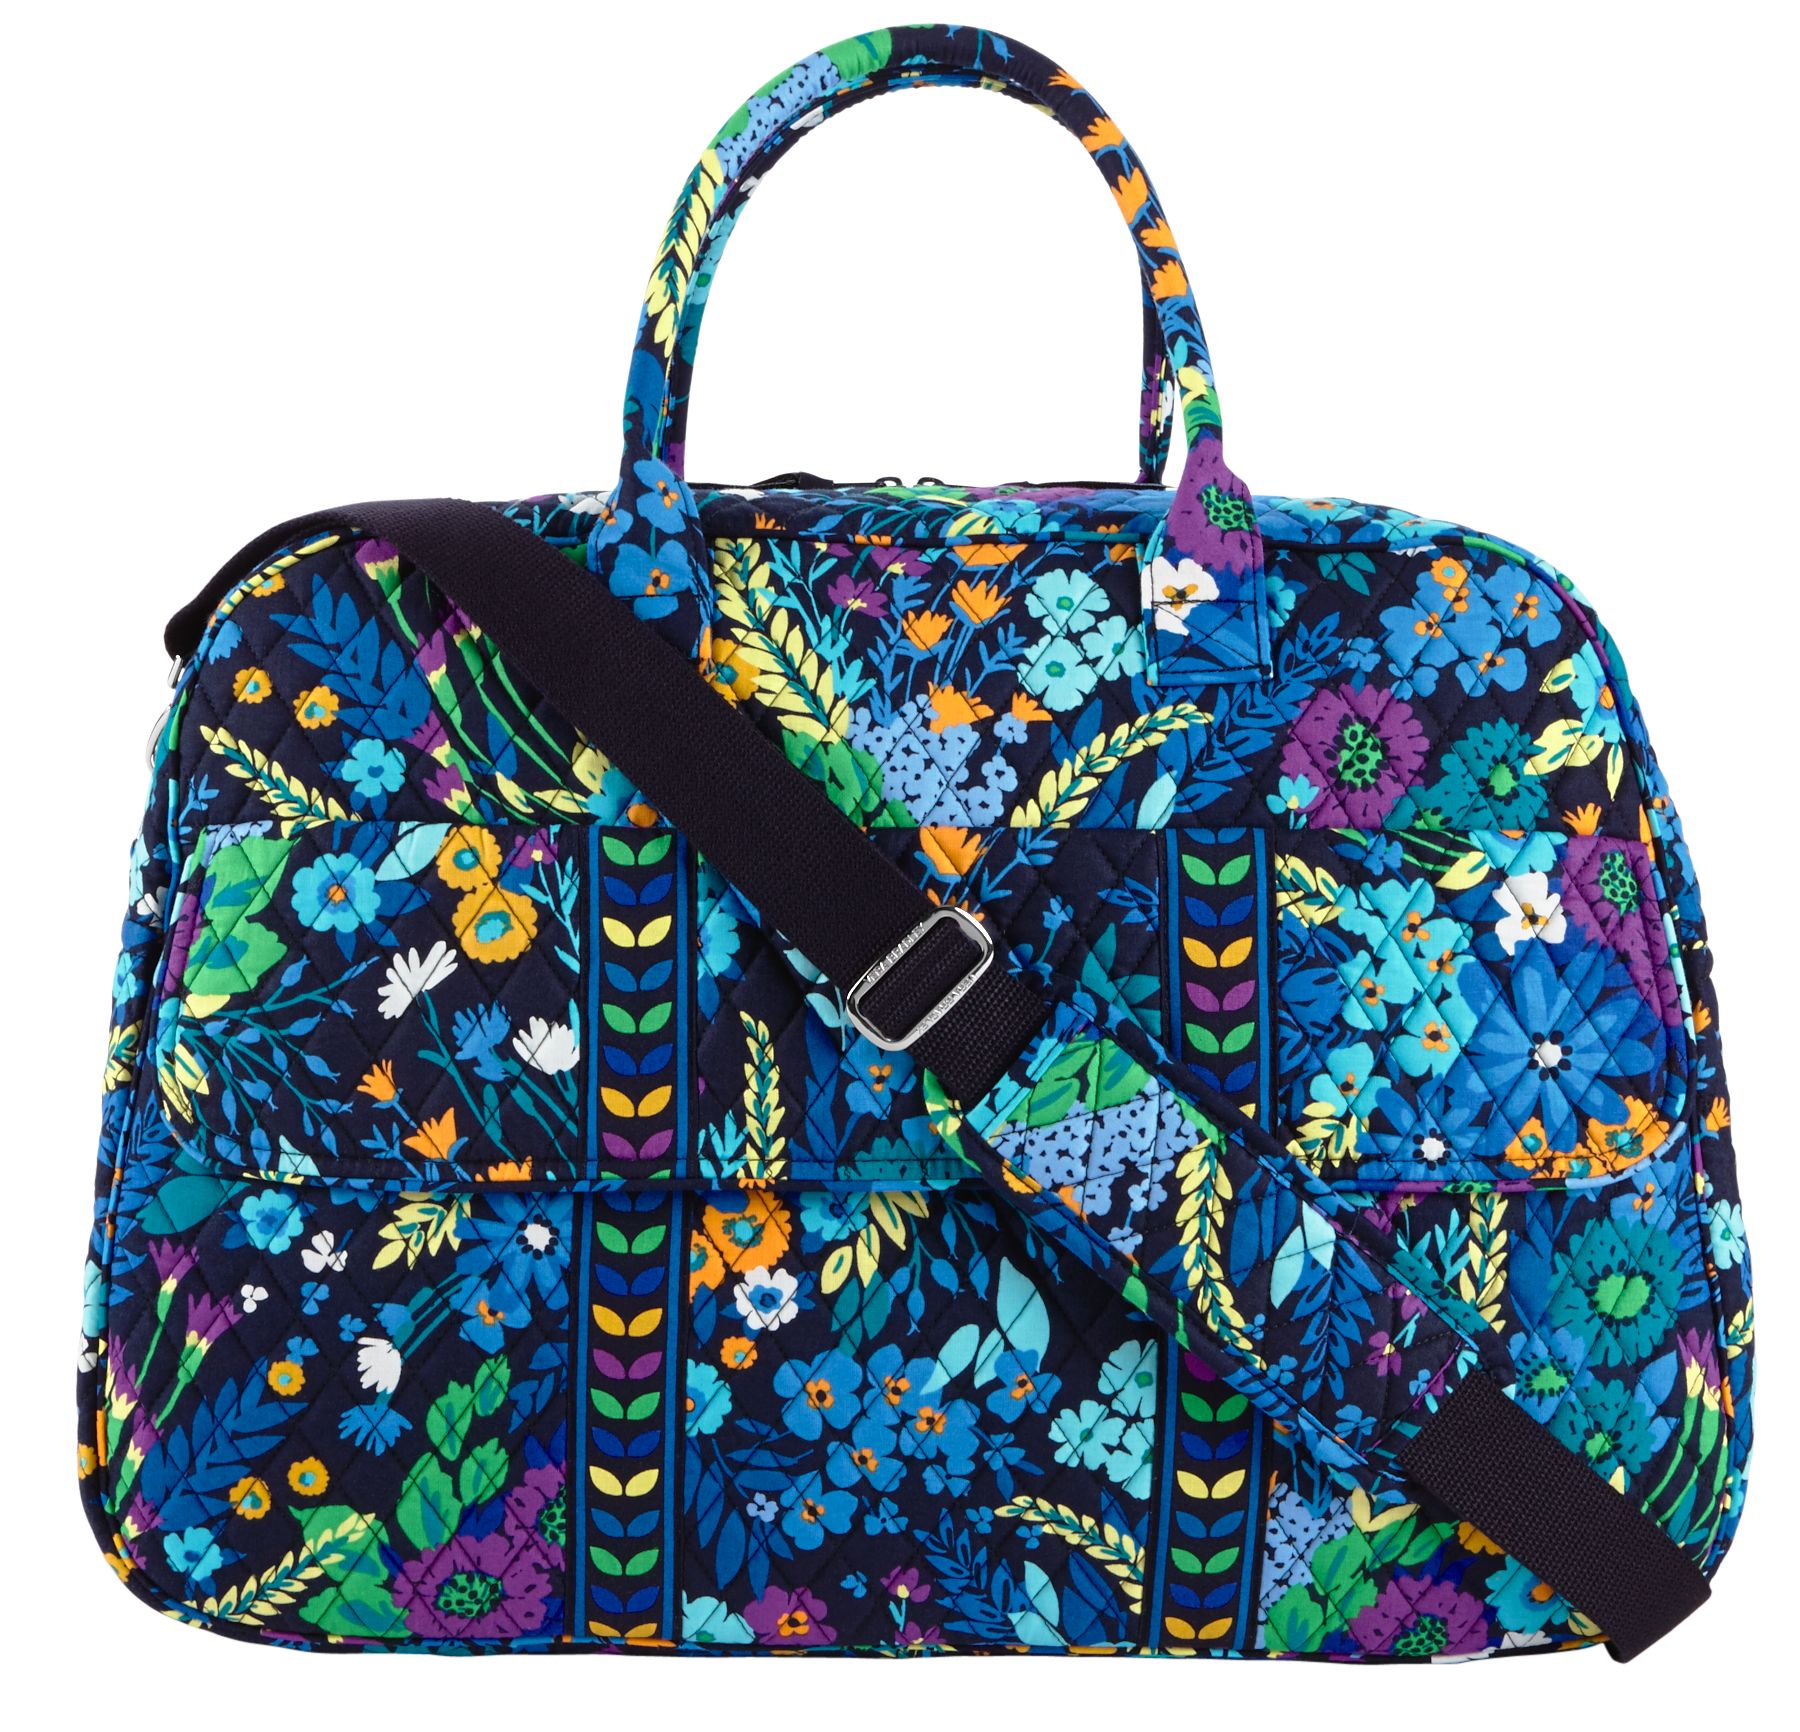 Xl Duffel Travel Bag Vera Bradley